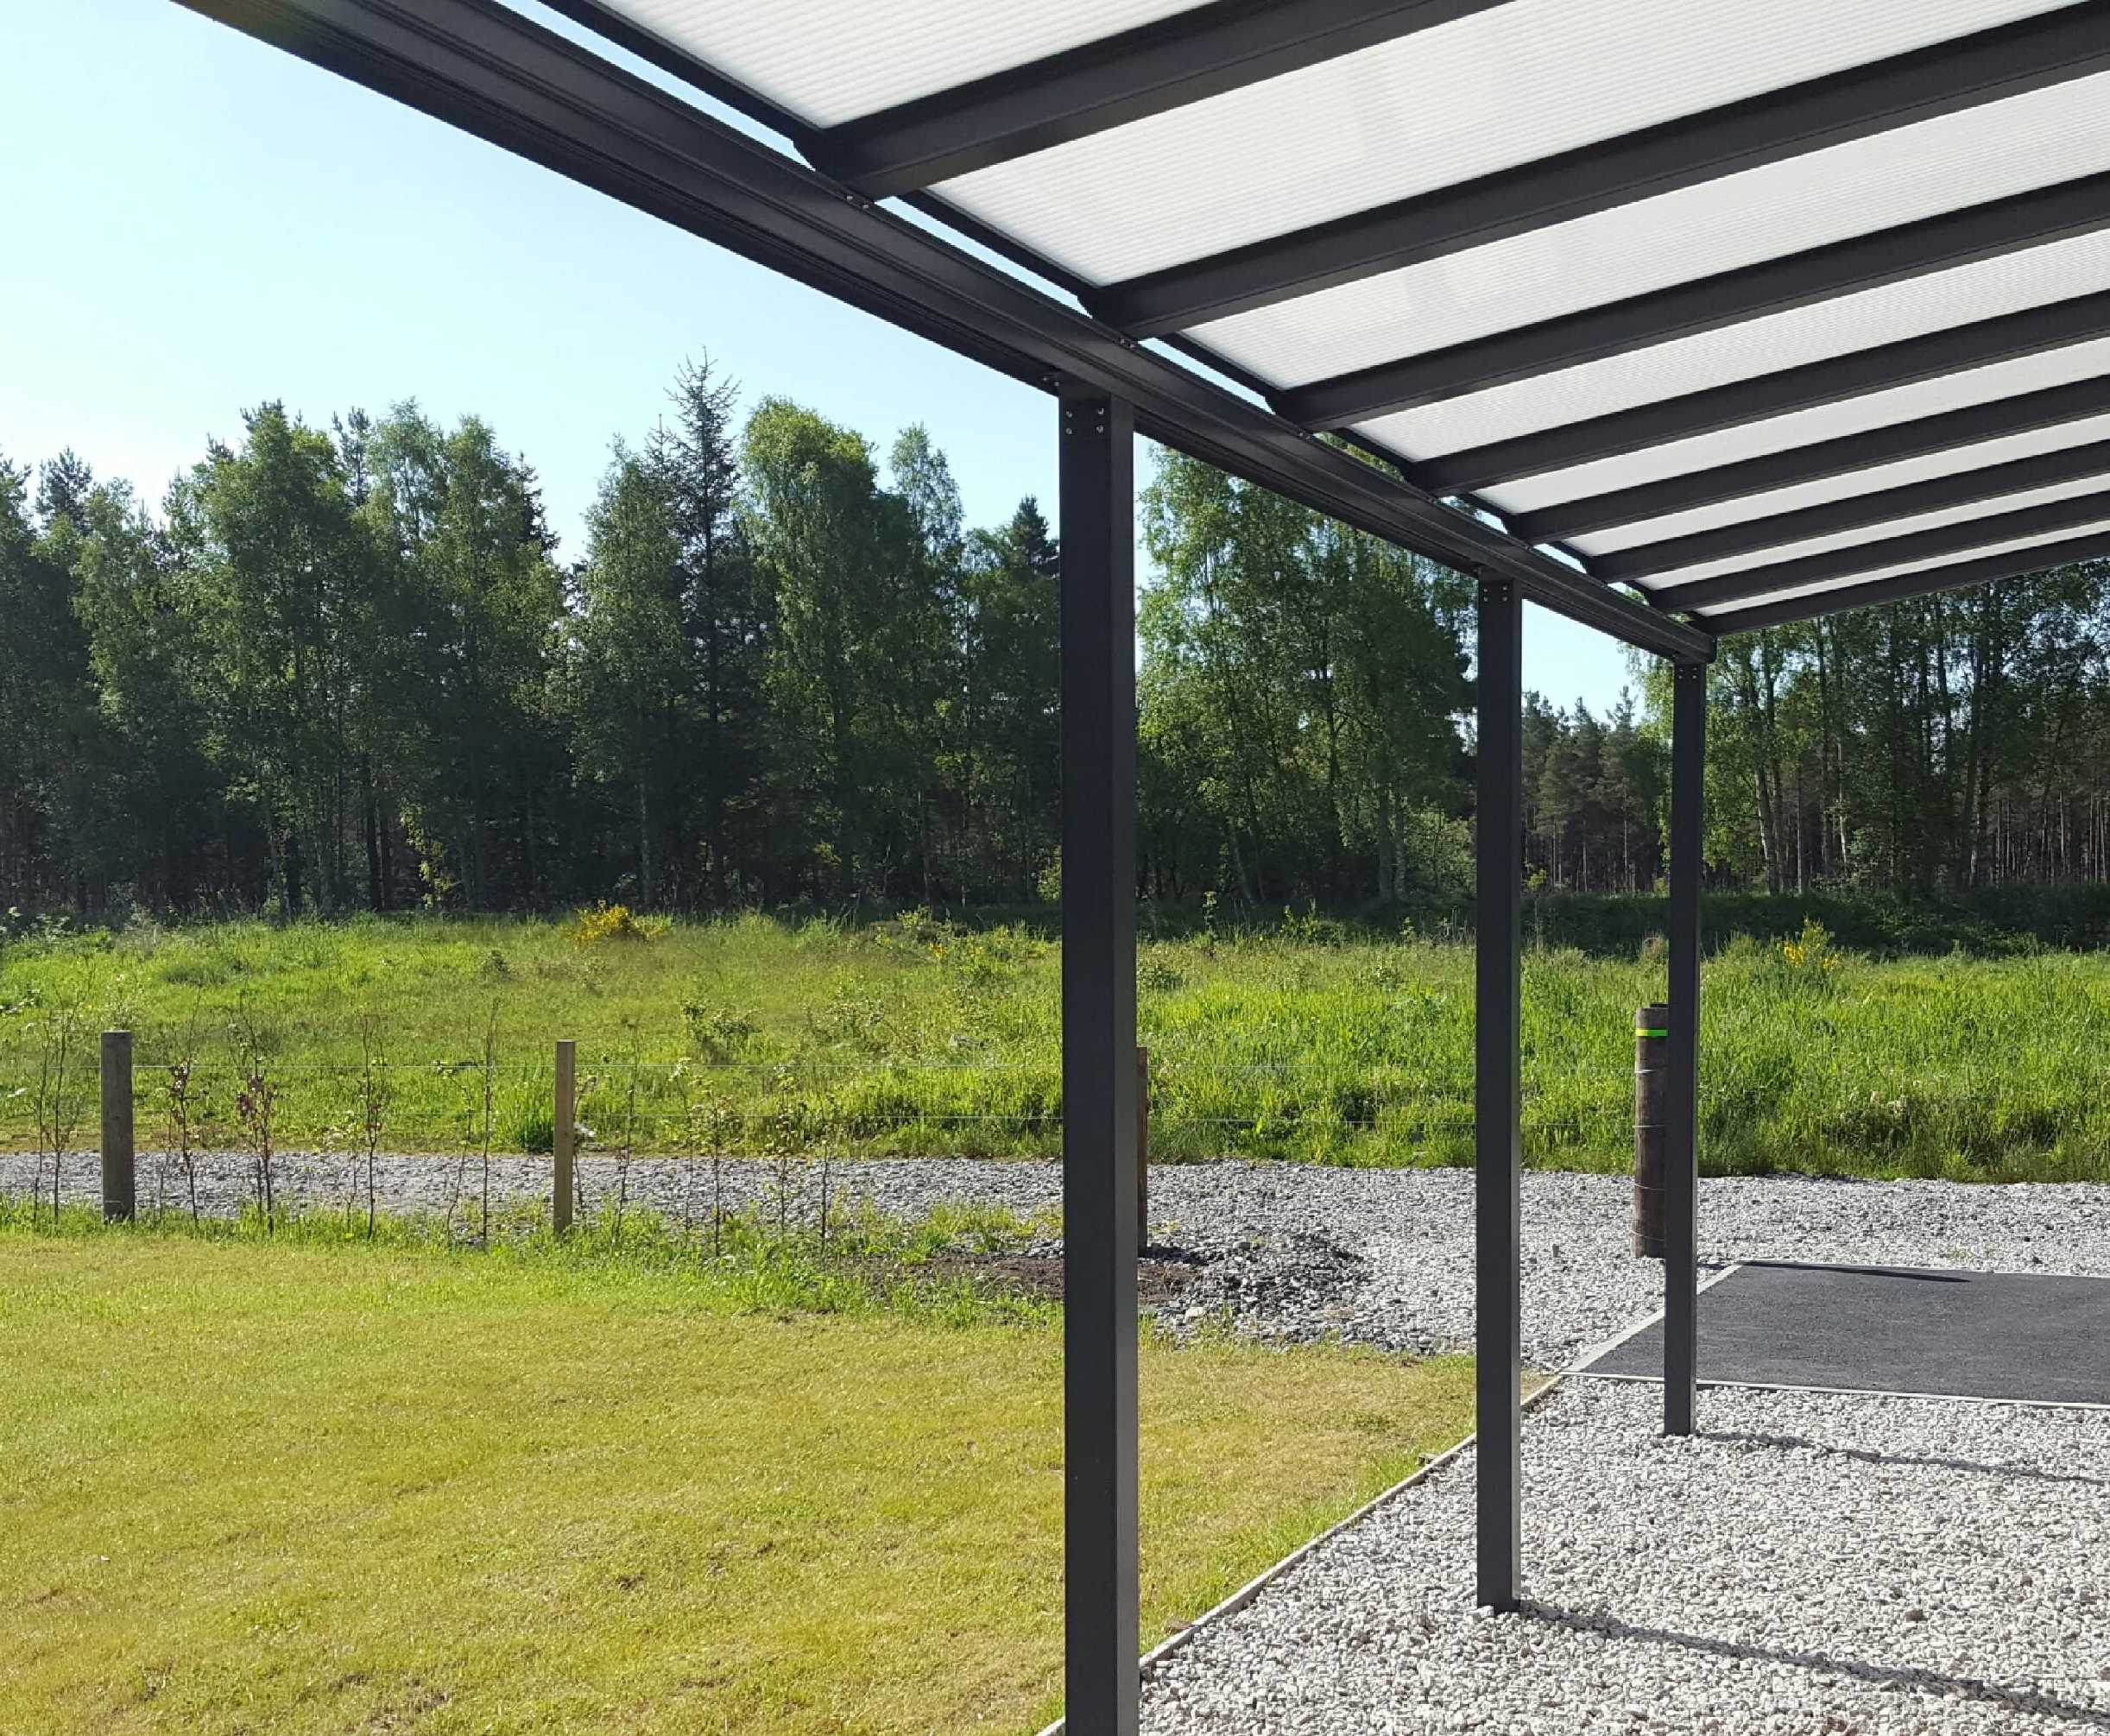 Omega Smart Lean-To Canopy, Anthracite Grey, UNGLAZED for 6mm Glazing - 9.8m (W) x 1.5m (P), (5) Supporting Posts